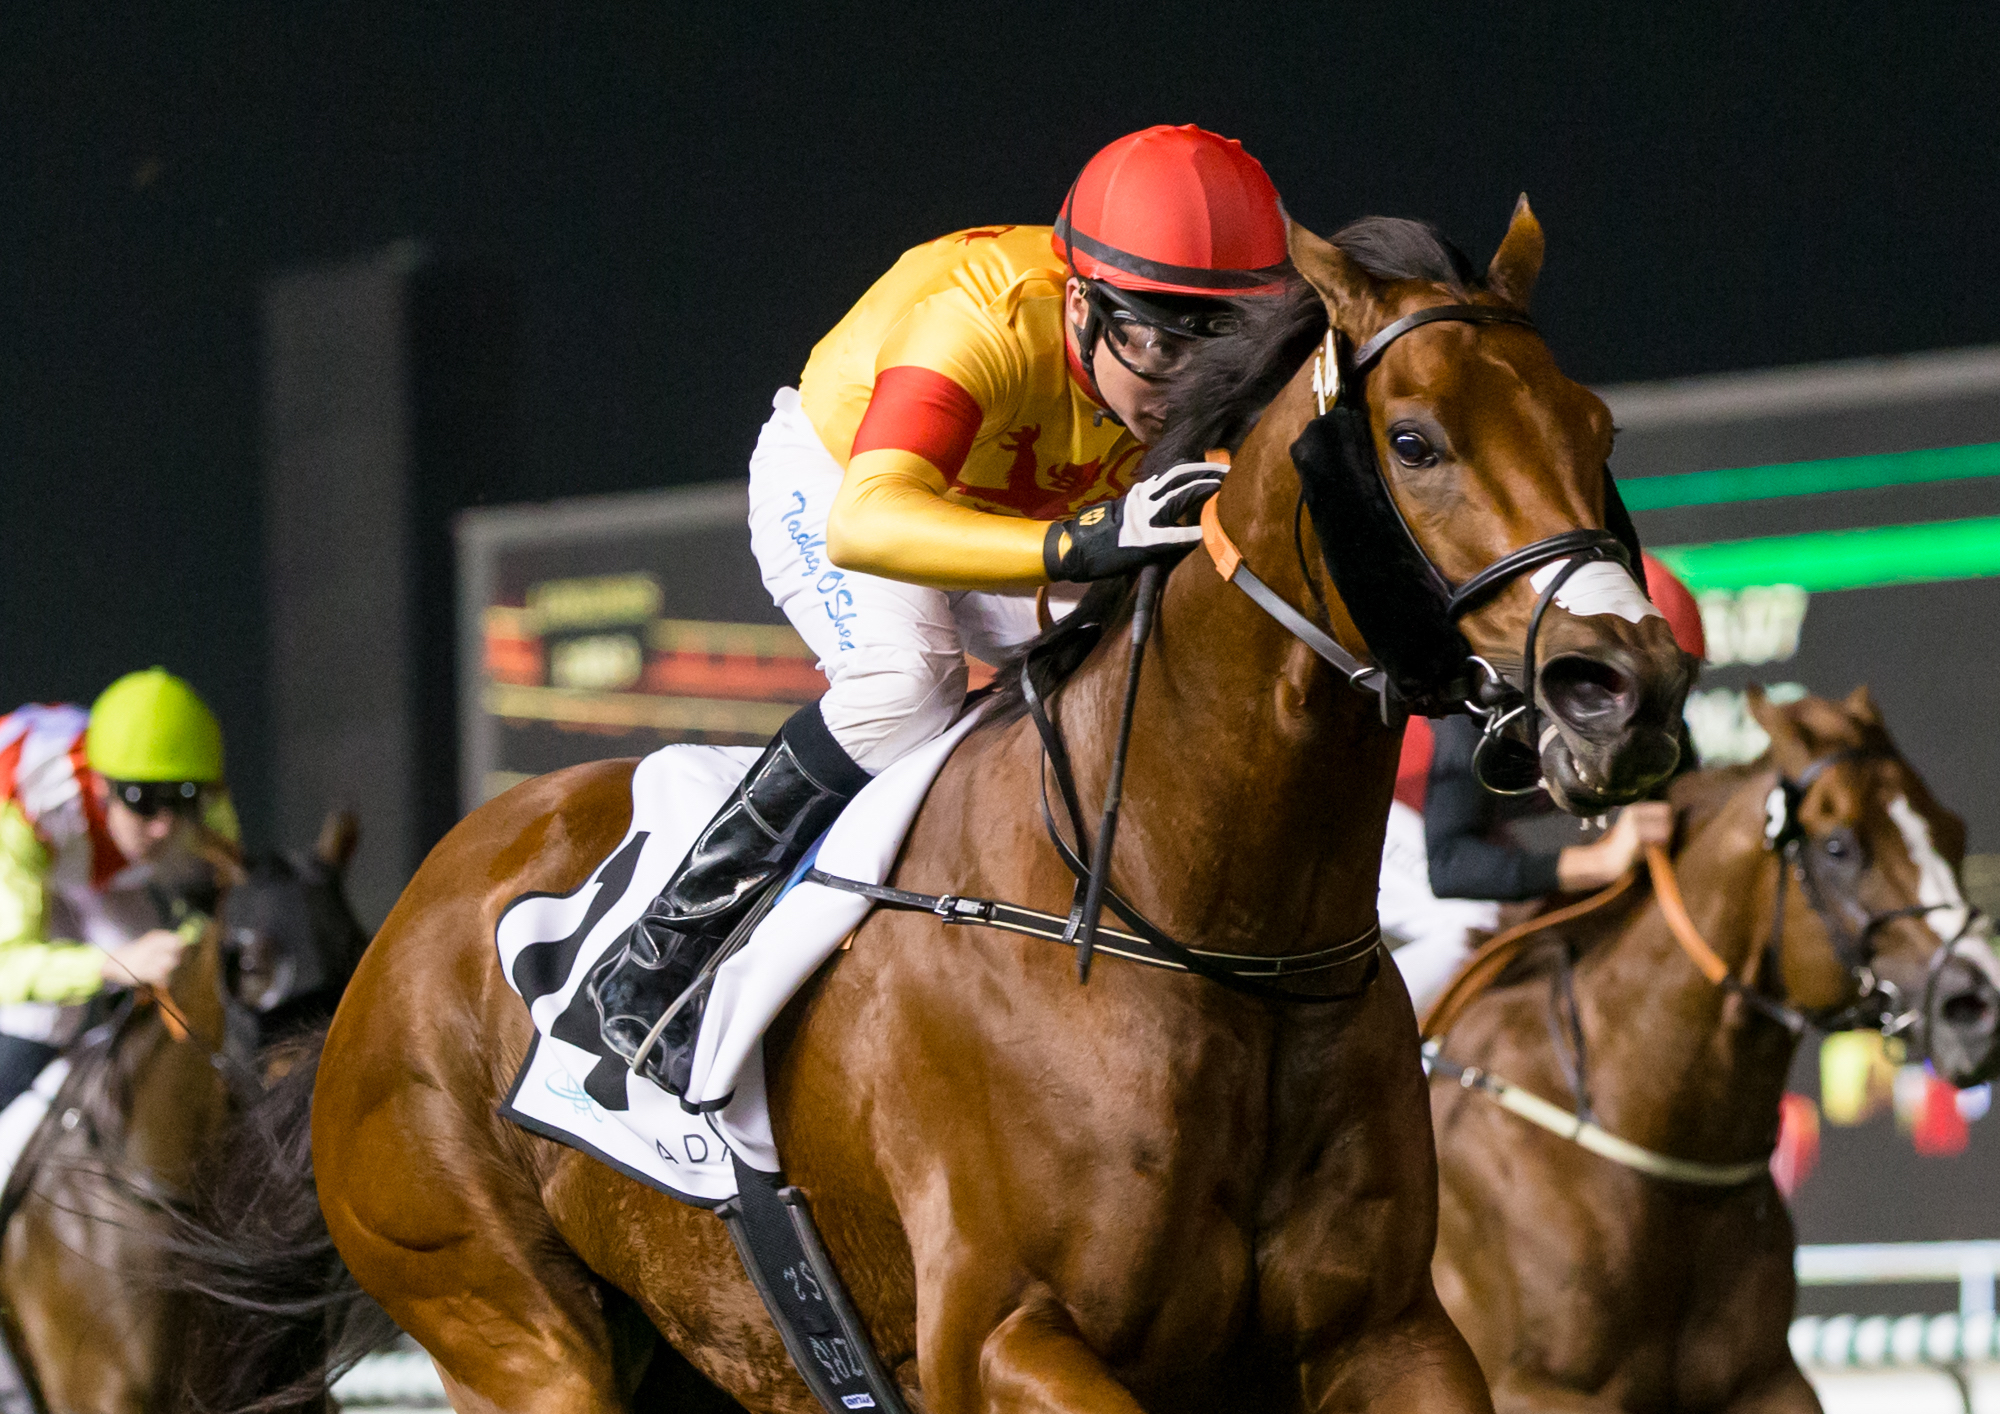 Hot Scot Racing's Riflescope, ridden  by Tadhg O'Shea, winning at Meydan in February. Photo: Dubai Racing Club/Erika Rasmussen